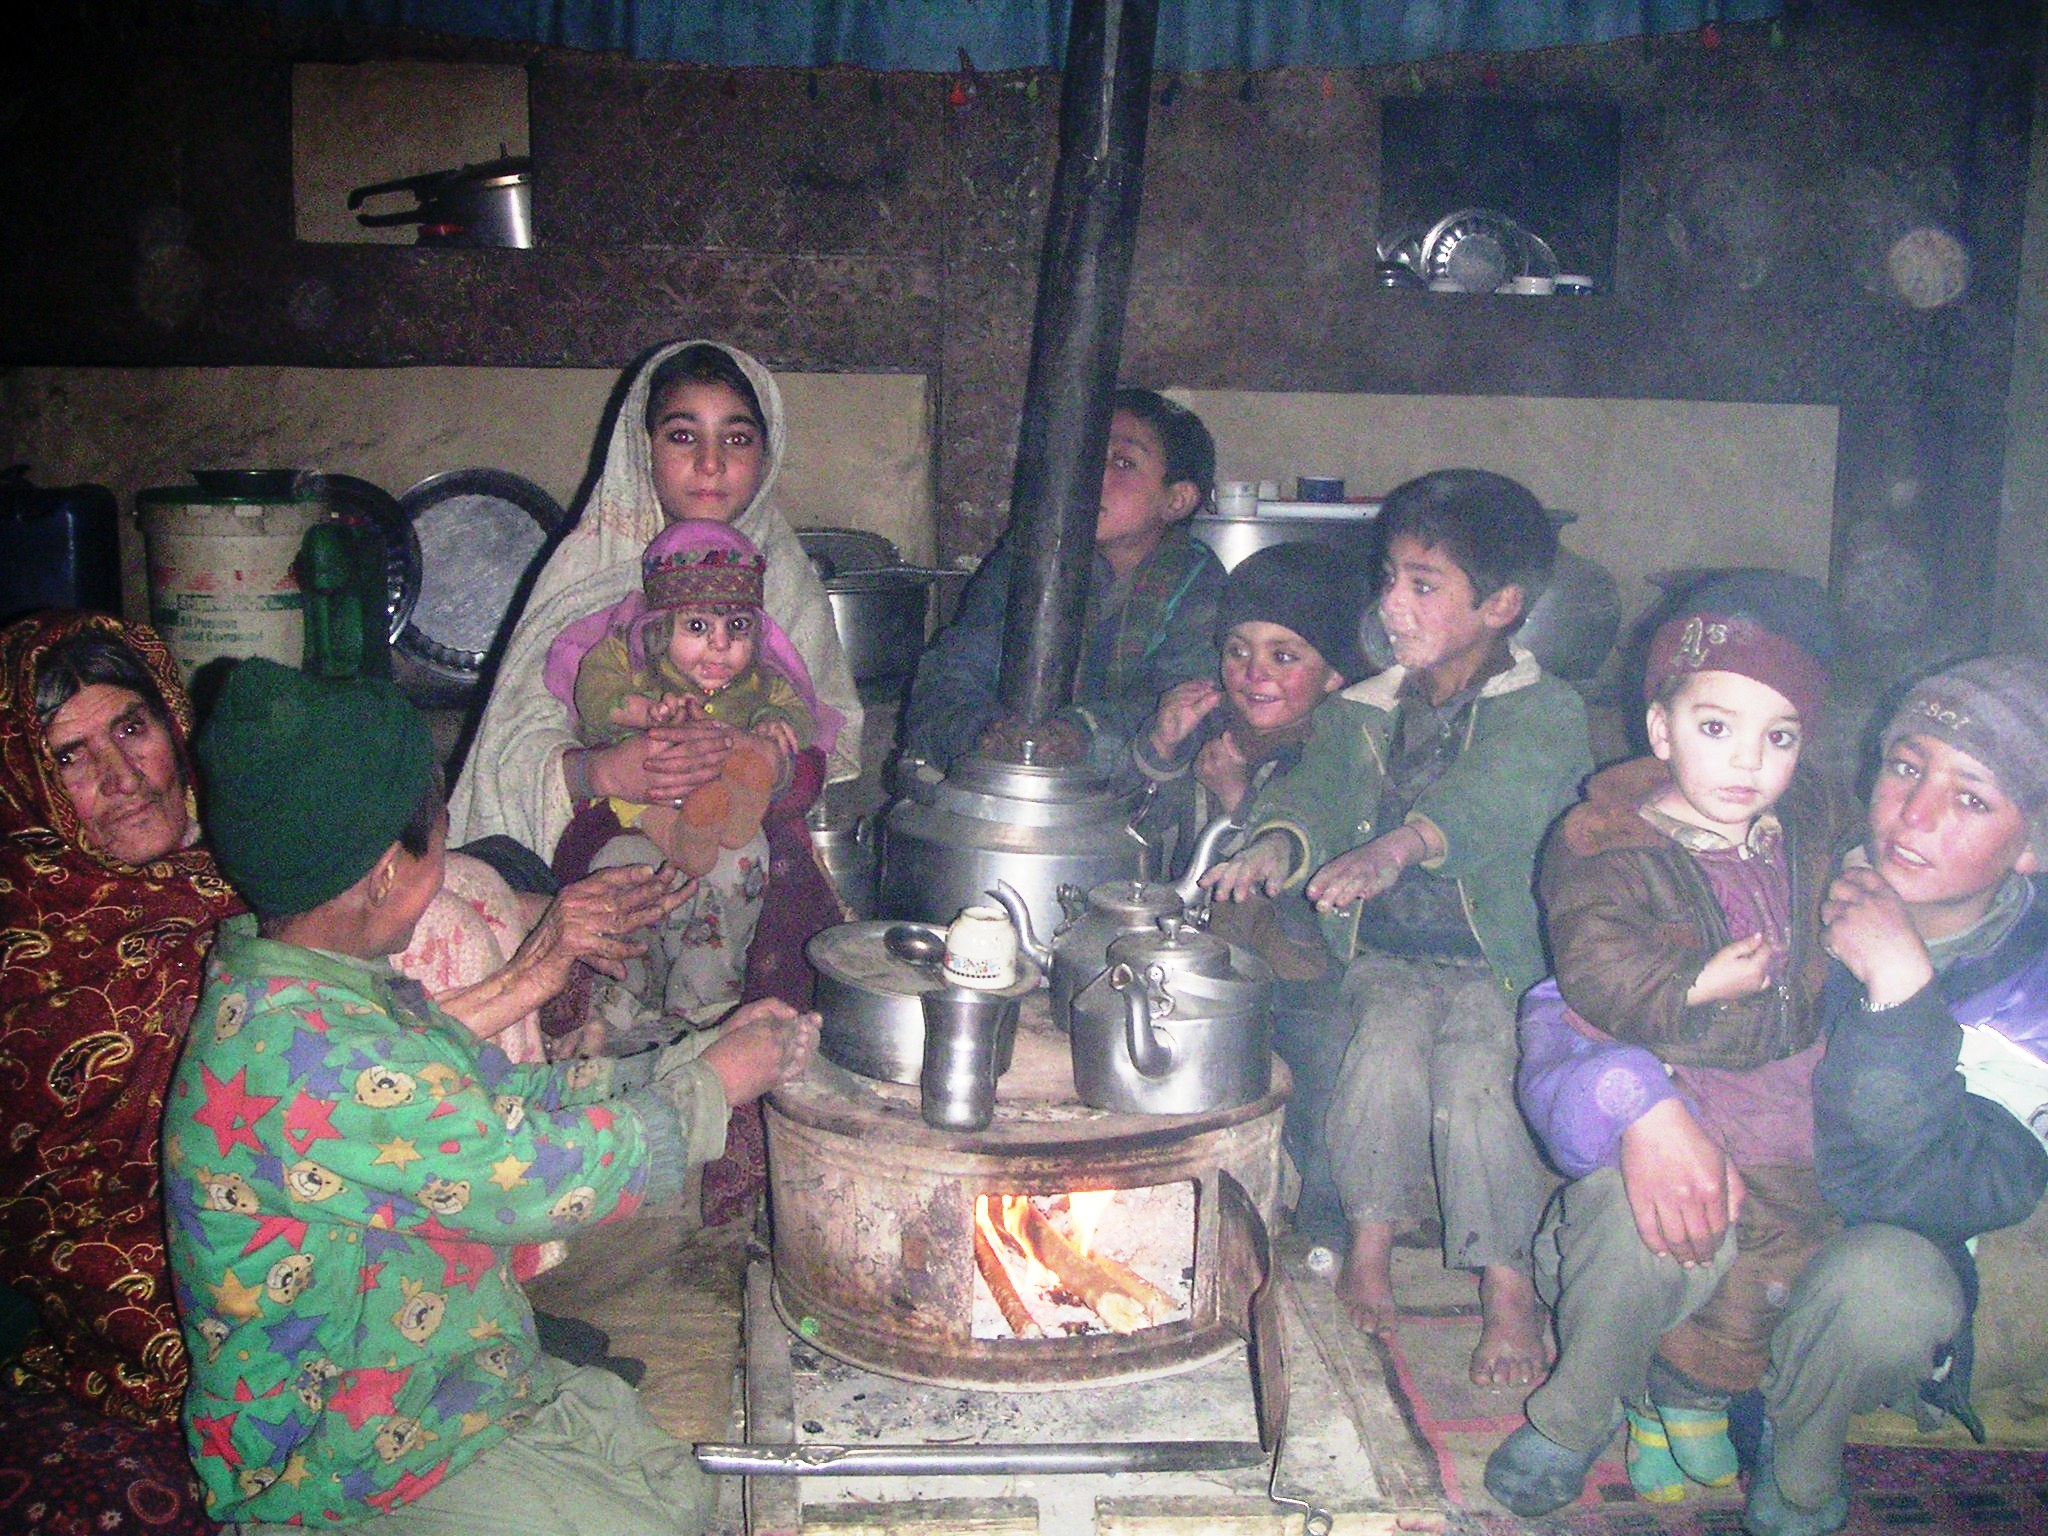 Filelocal children in shadandur valley in chitral pakistan listening a khowar language story from grand mother jpg